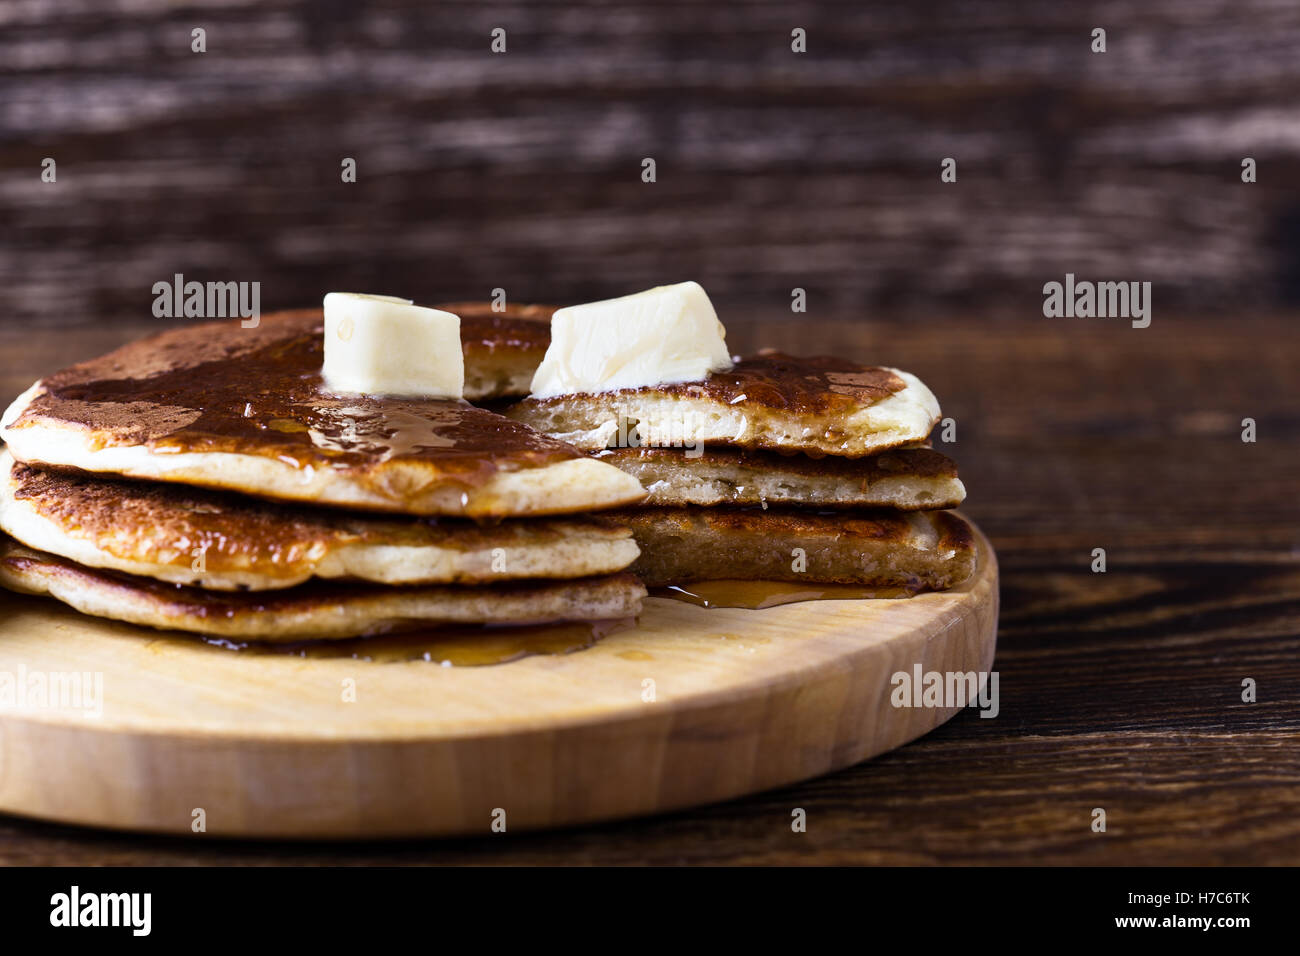 Homemade pancakes served warm with butter and maple syrup on rustic wooden table - Stock Image